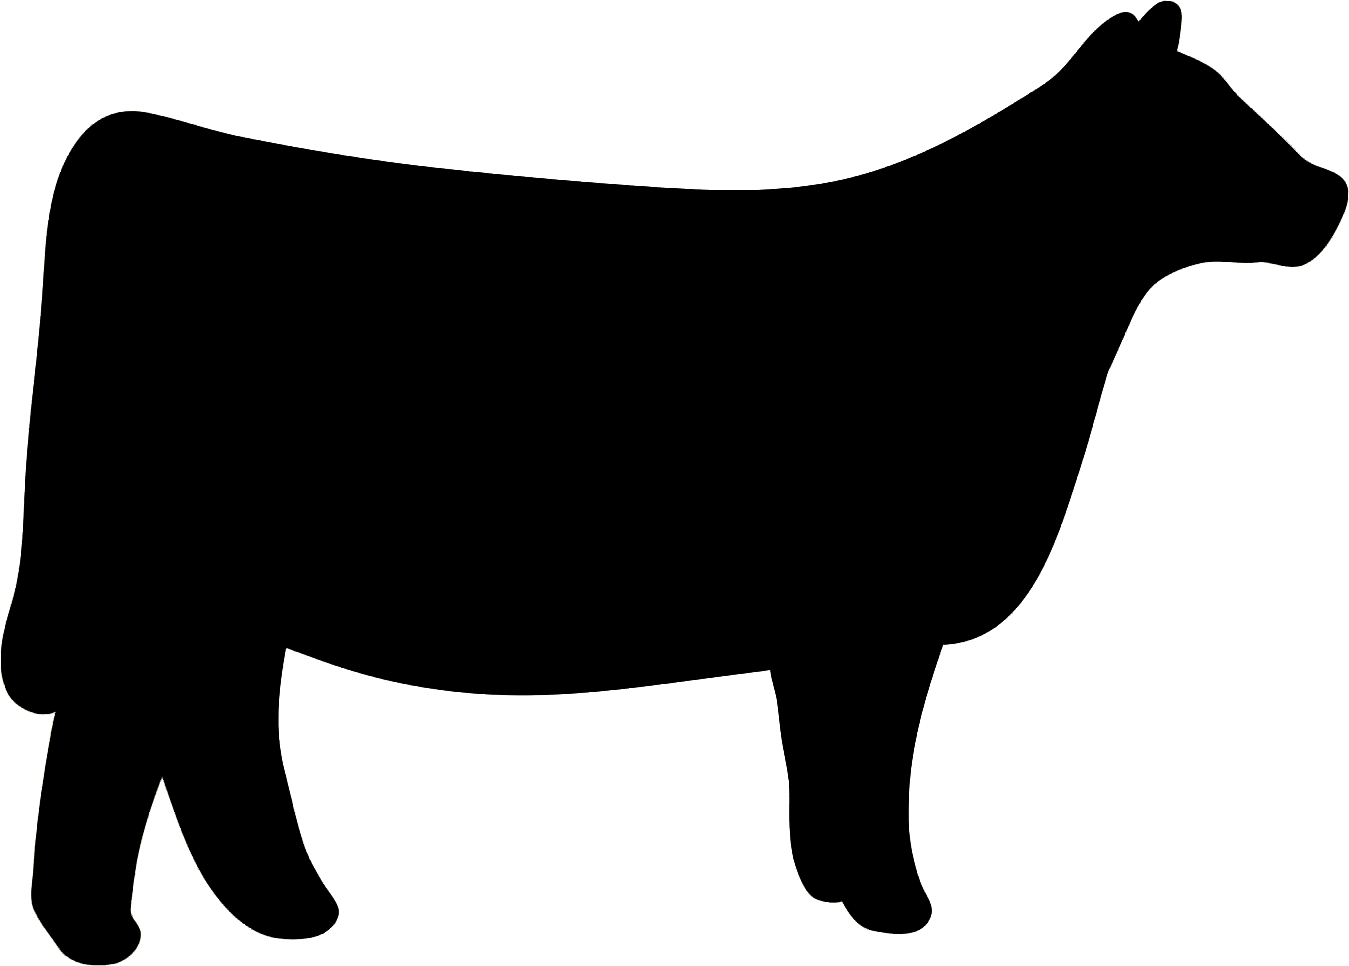 Western svg heifer. Cow clipart pictures pinterest